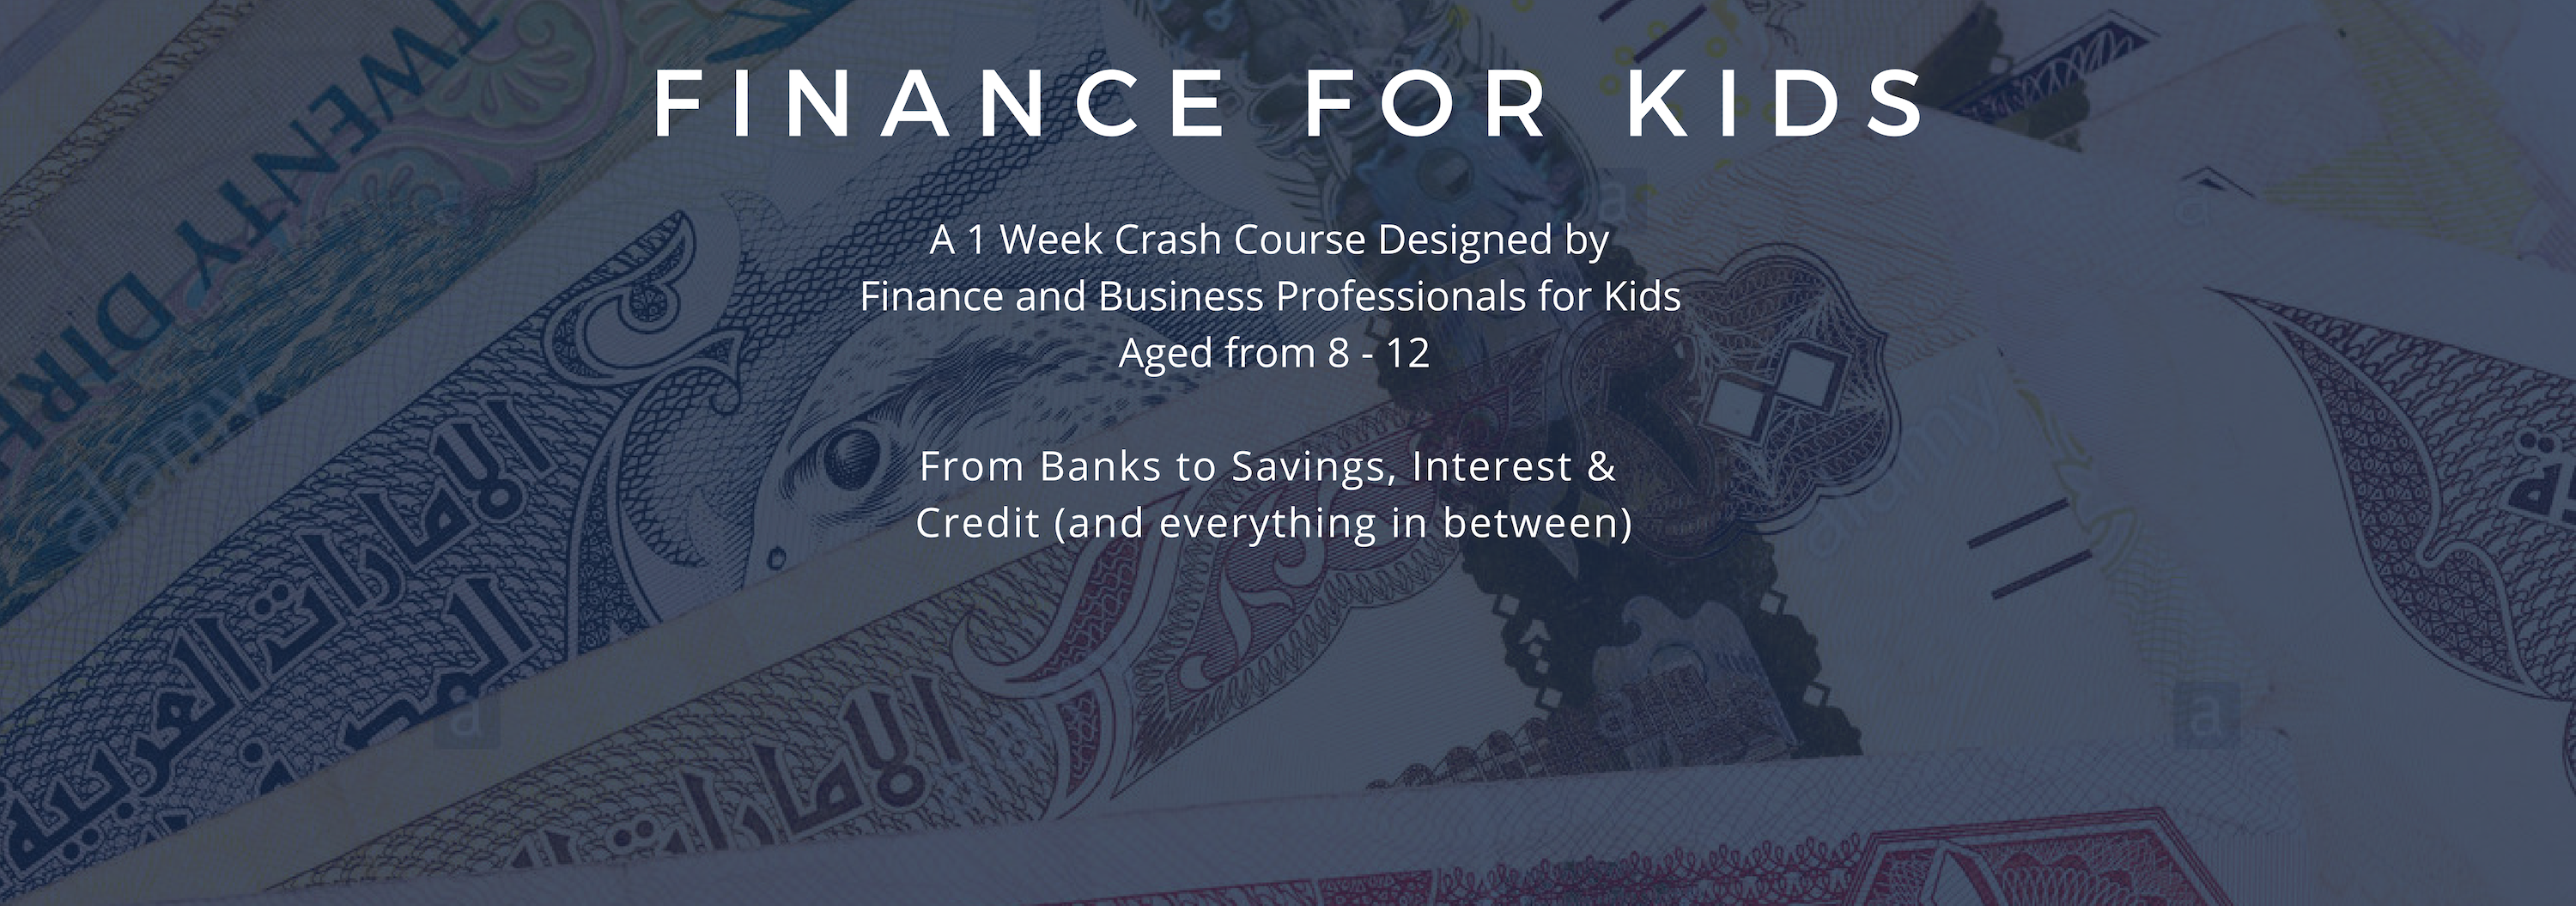 Finance-and-money-for-kids-course-in-dubai